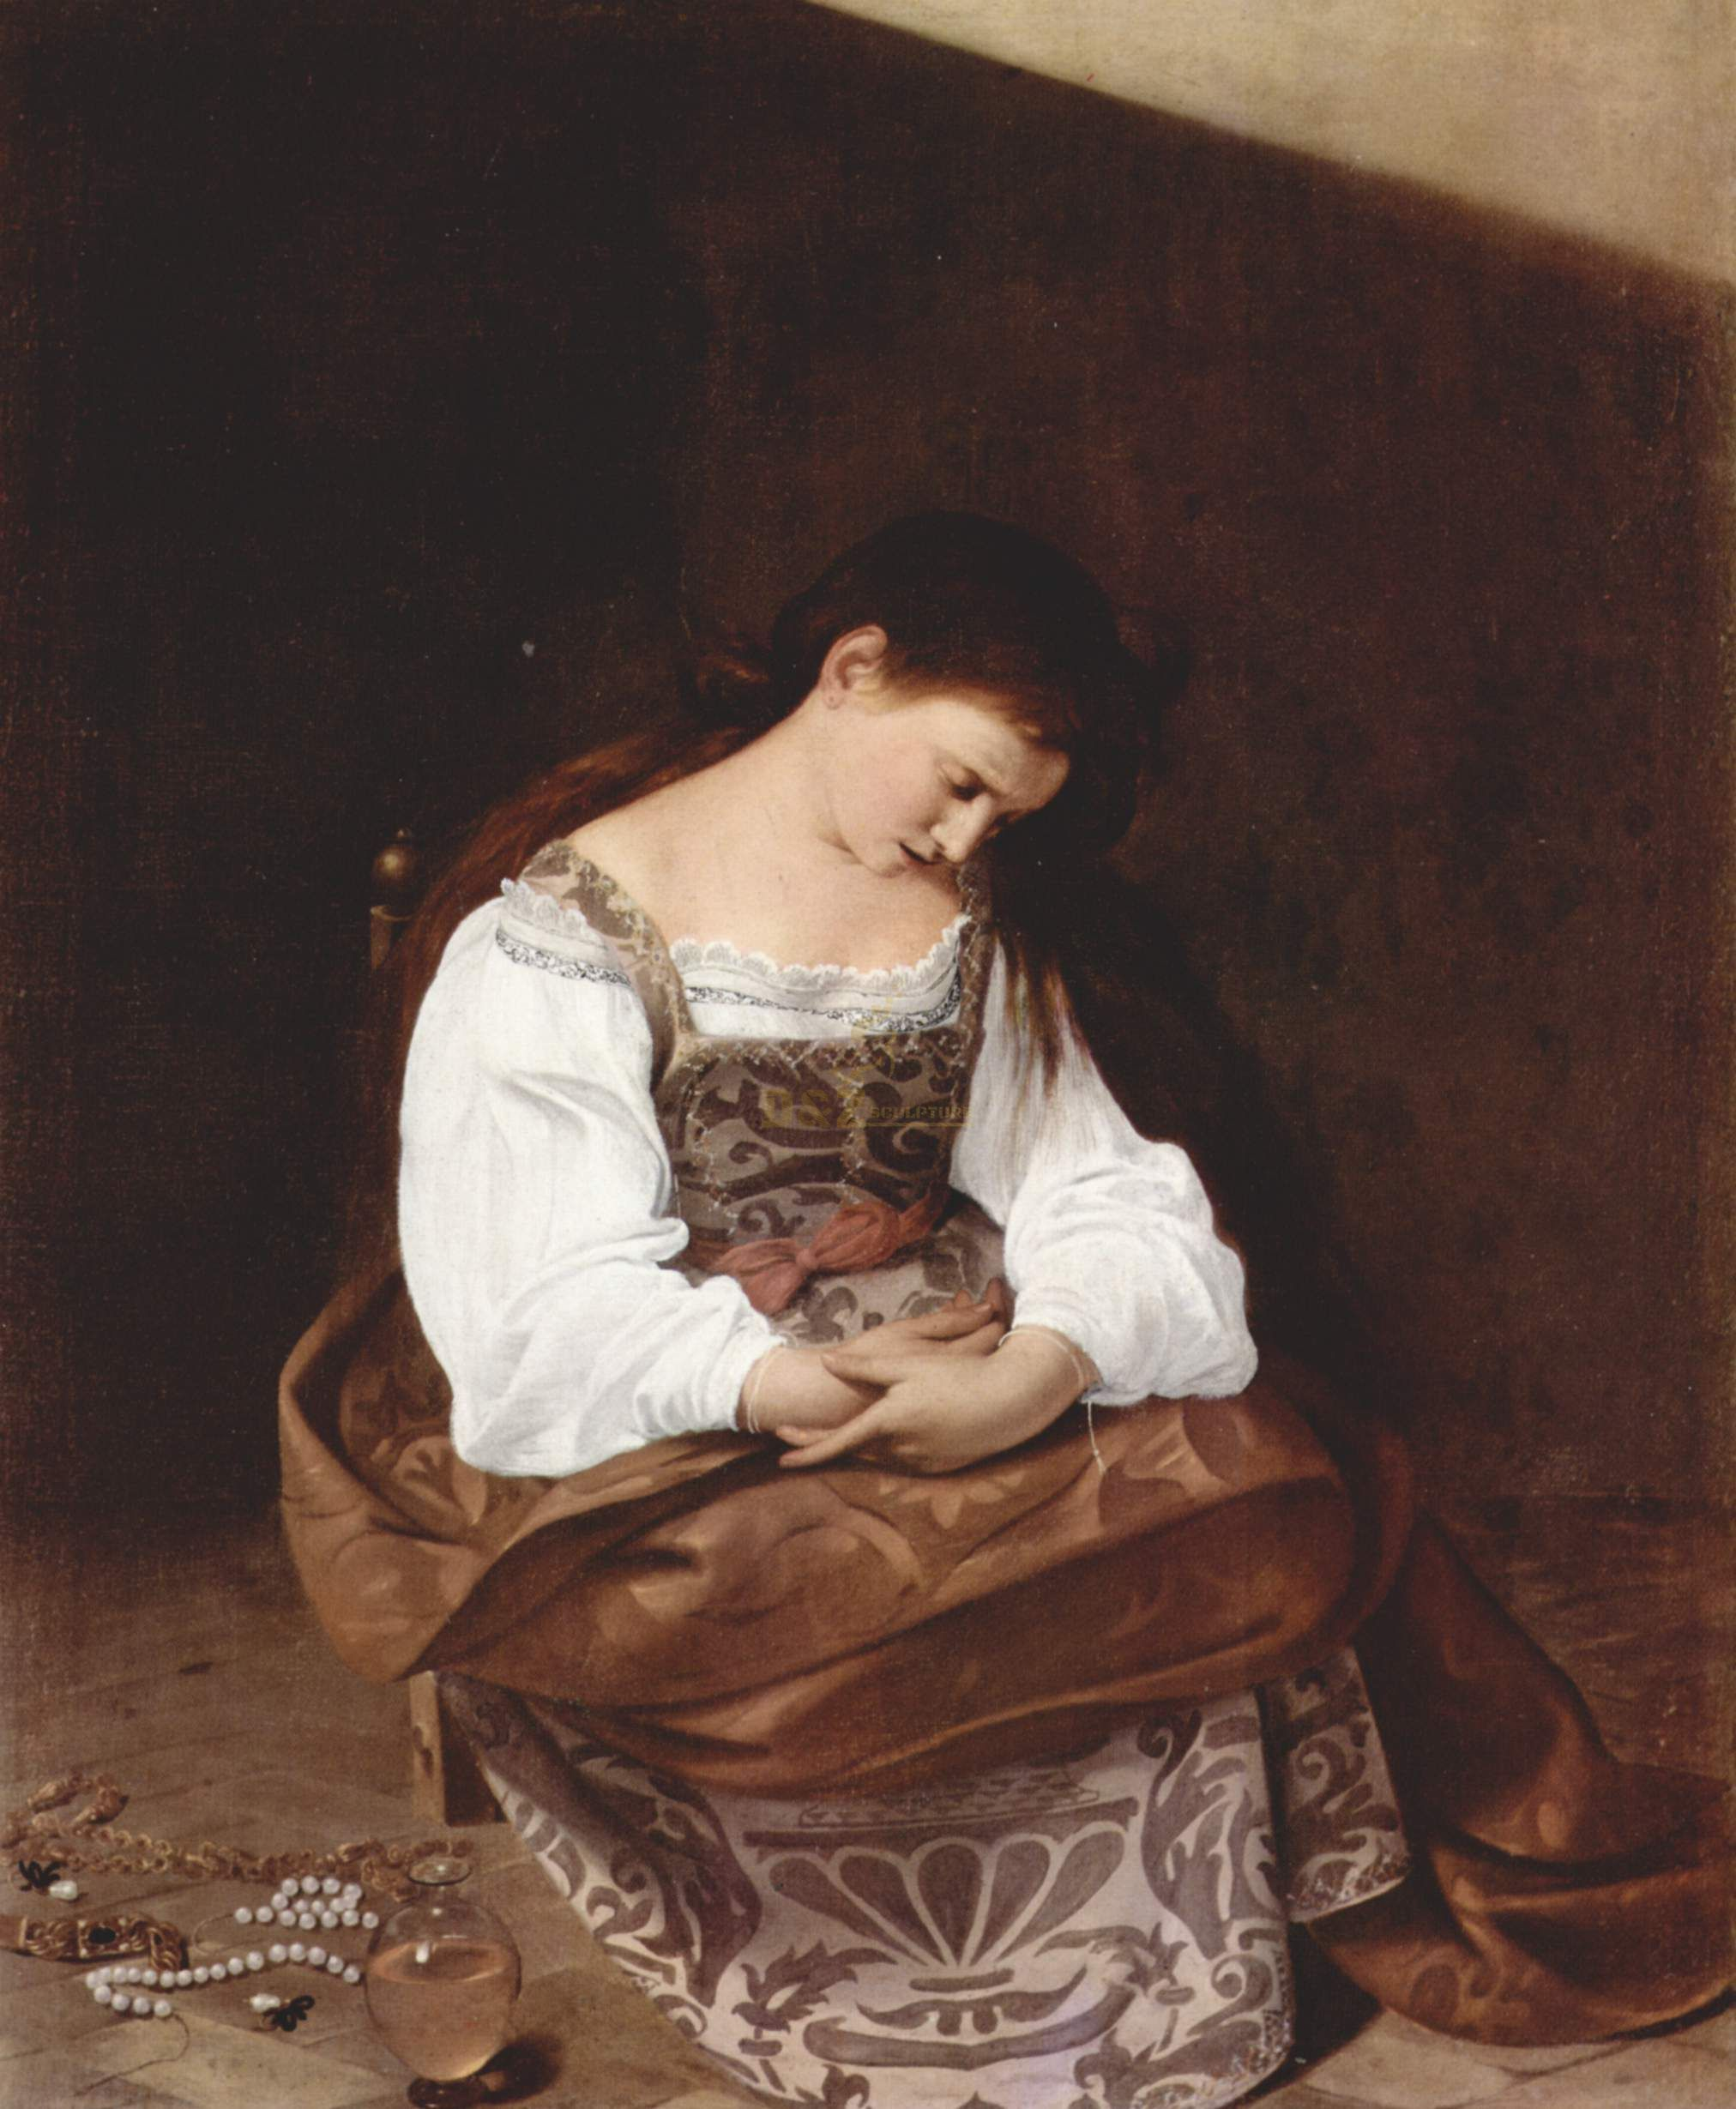 repentant Mary Magdalene, bowed over in penitent sorrow